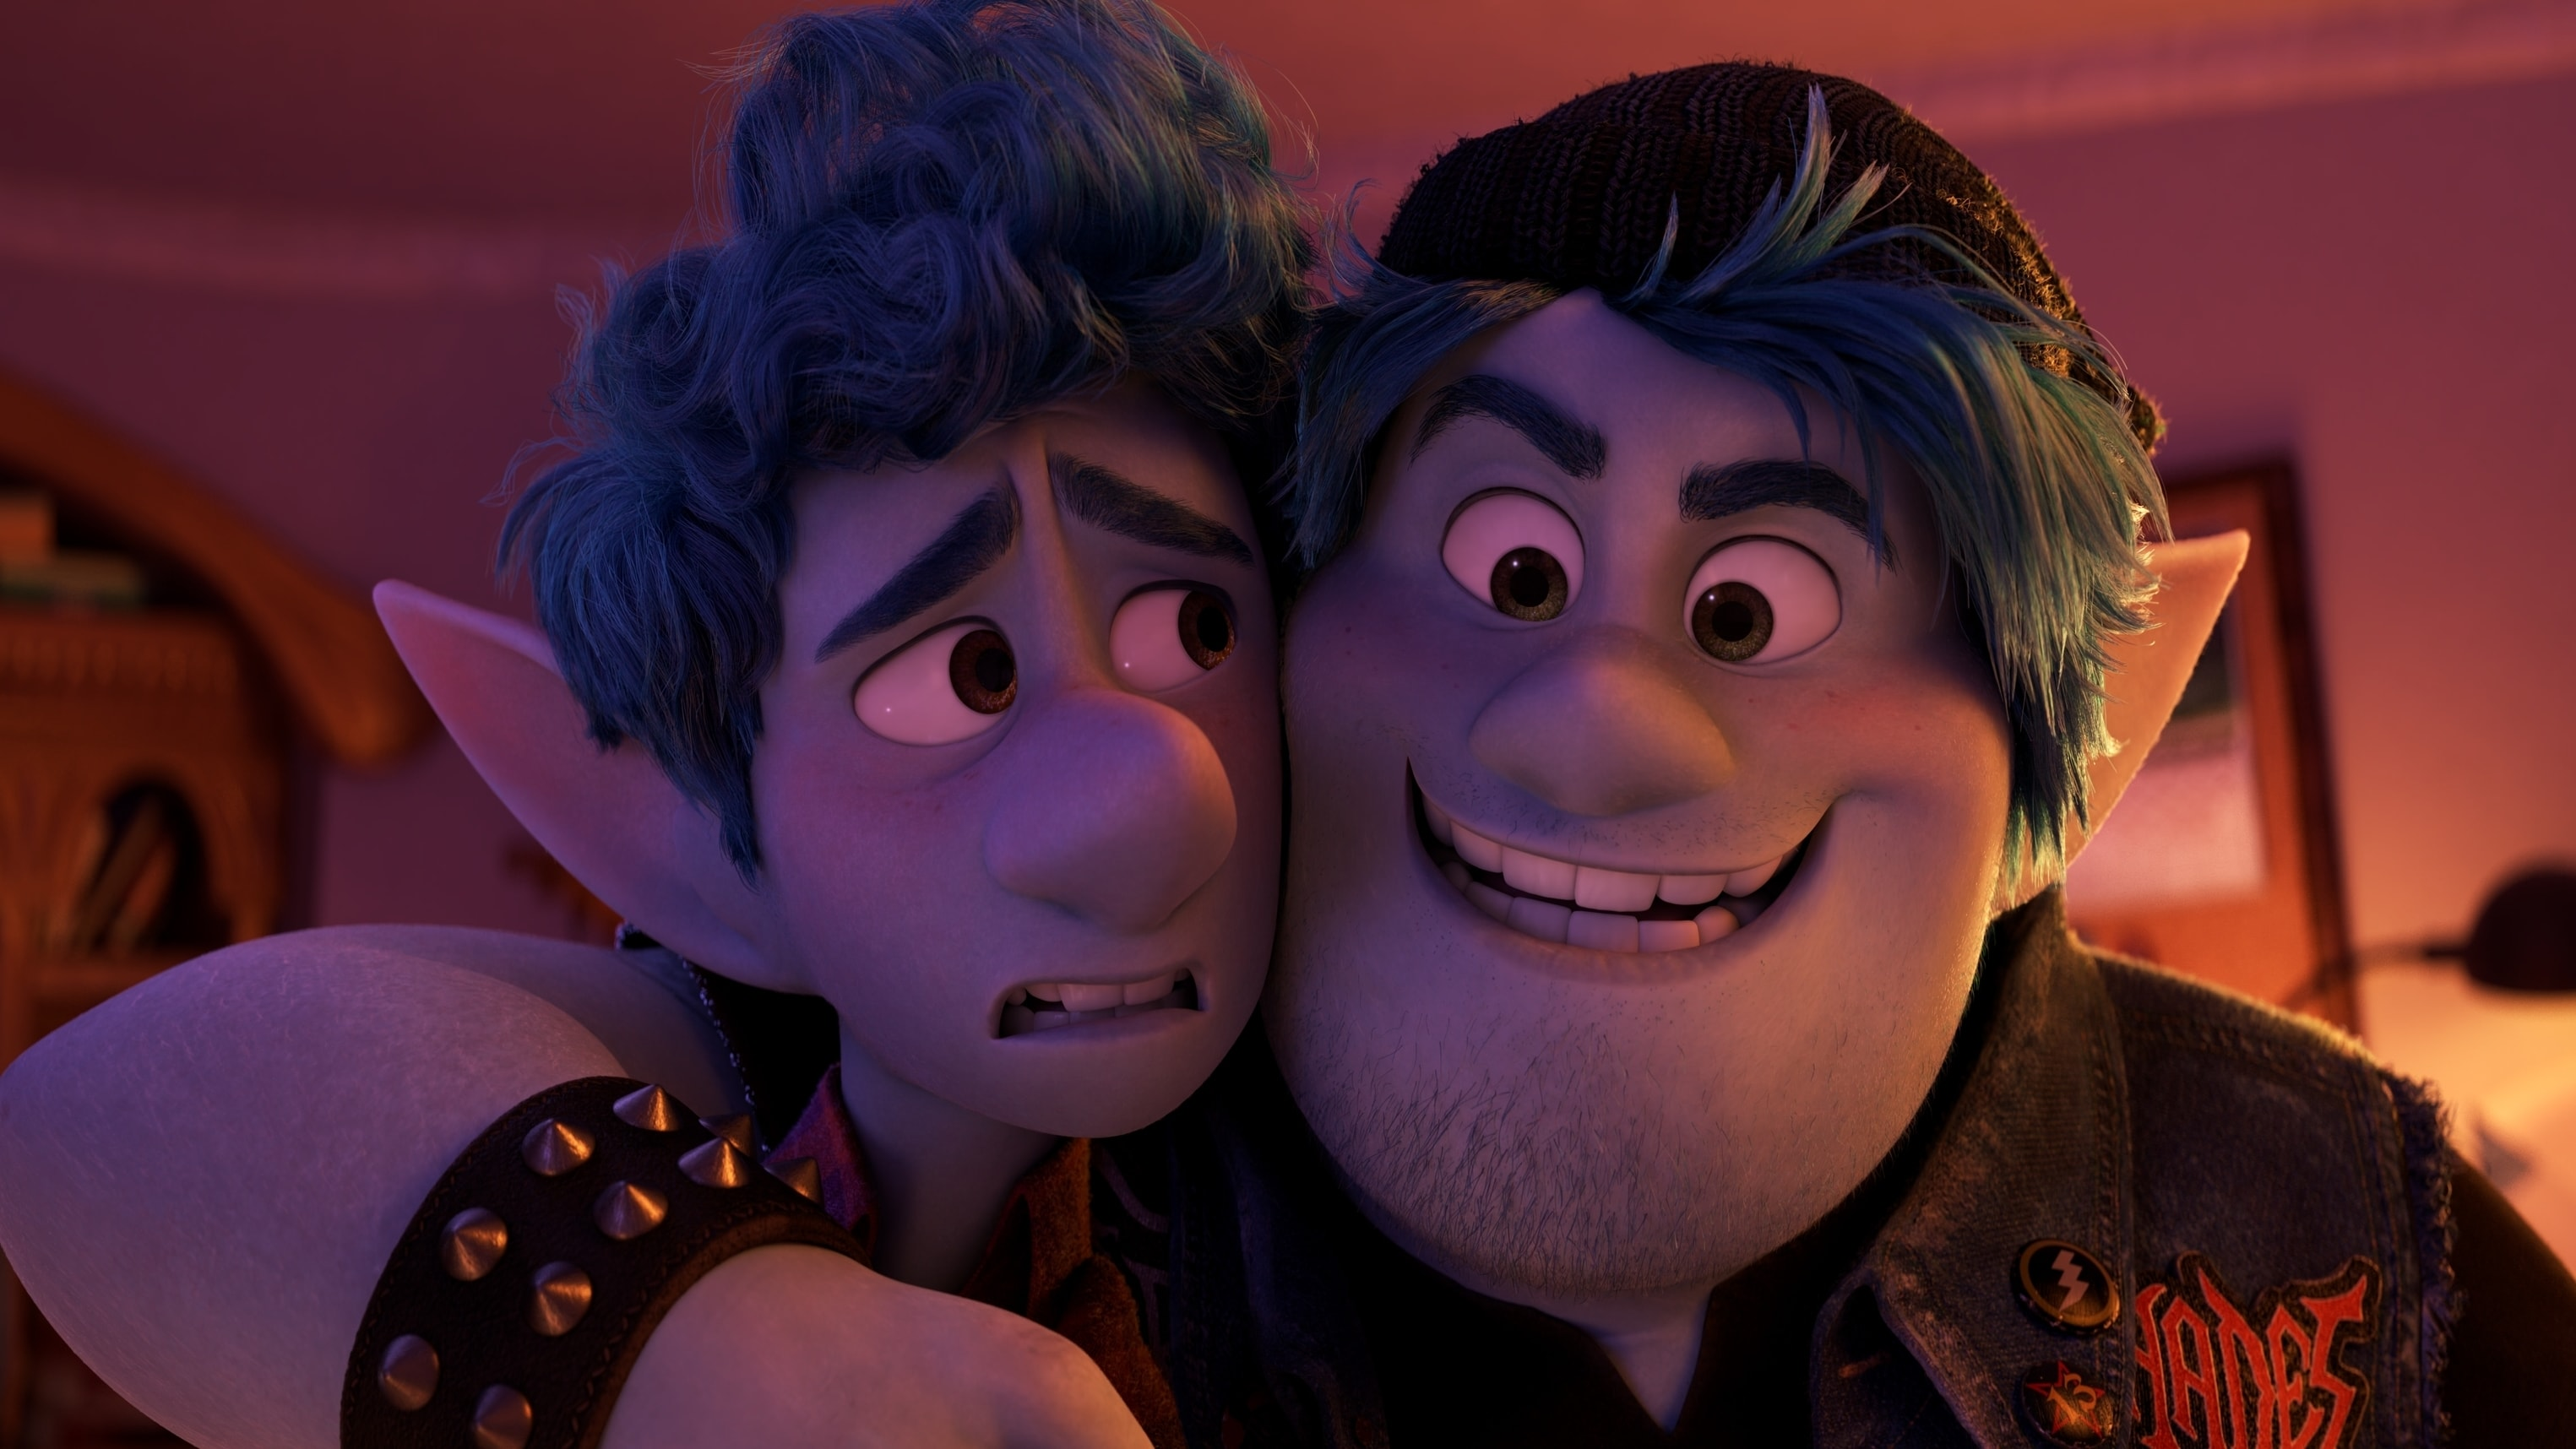 Disney and Pixar's 'Onward' to Arrive Early on Digital and Disney+